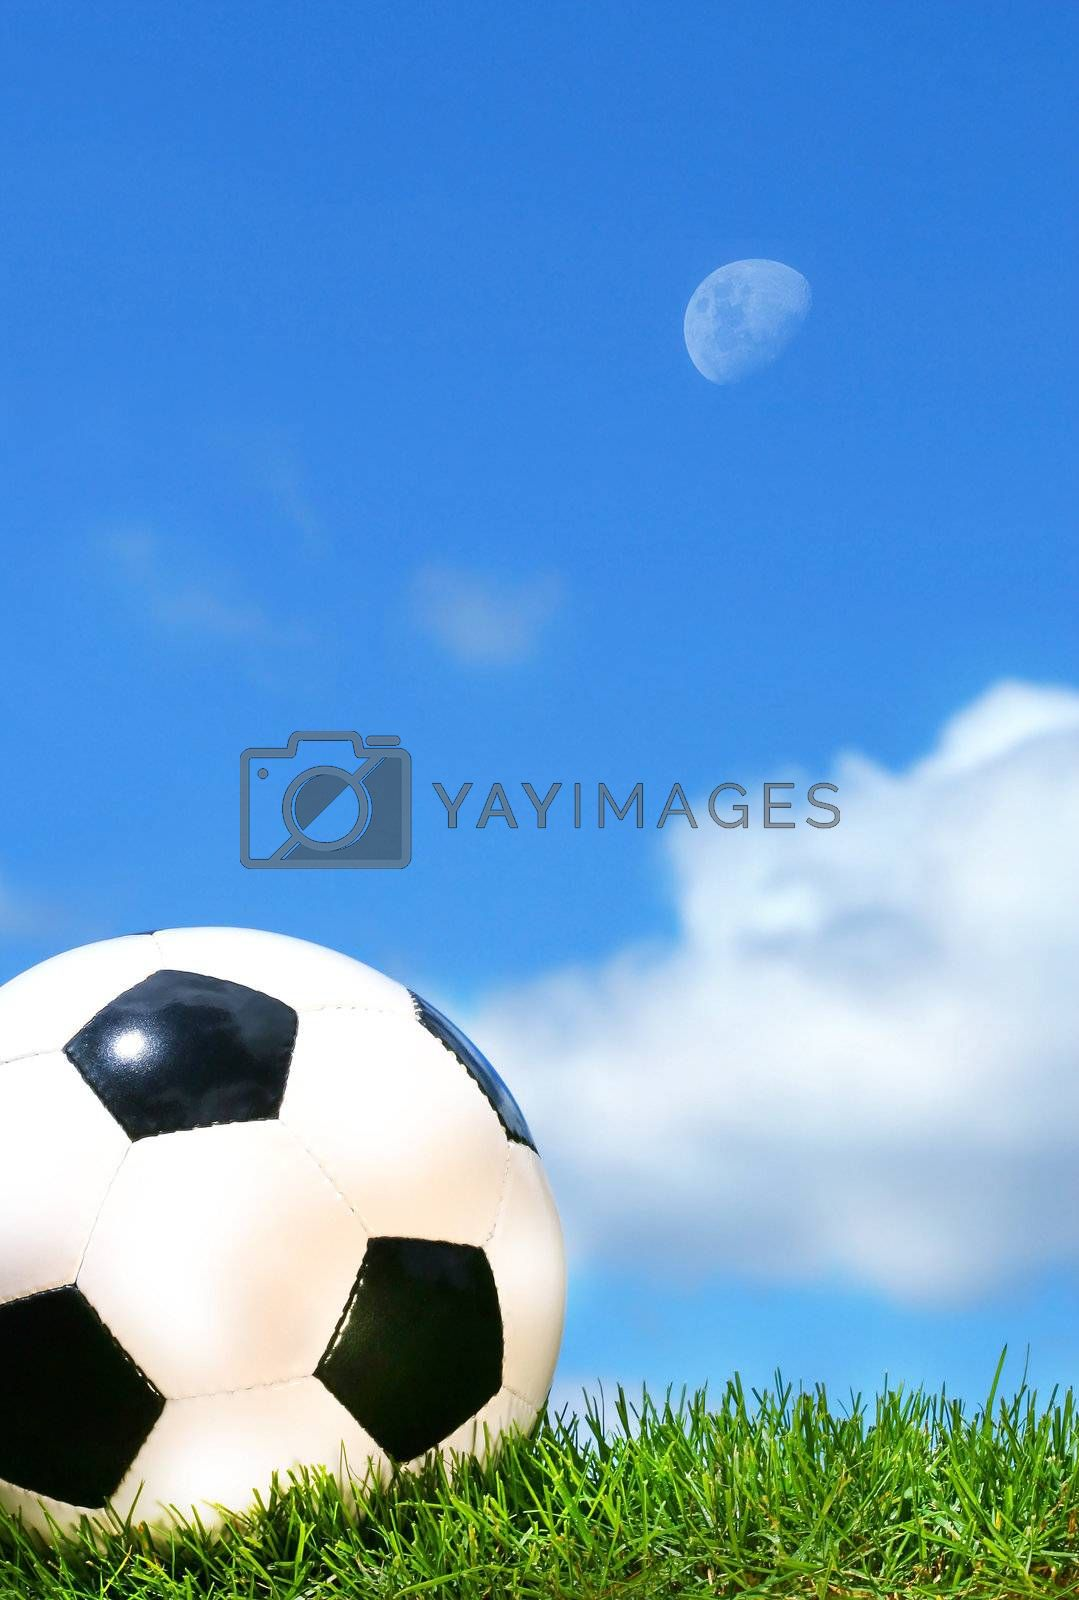 Closeup of a soccerball against a blue sky by Sandralise